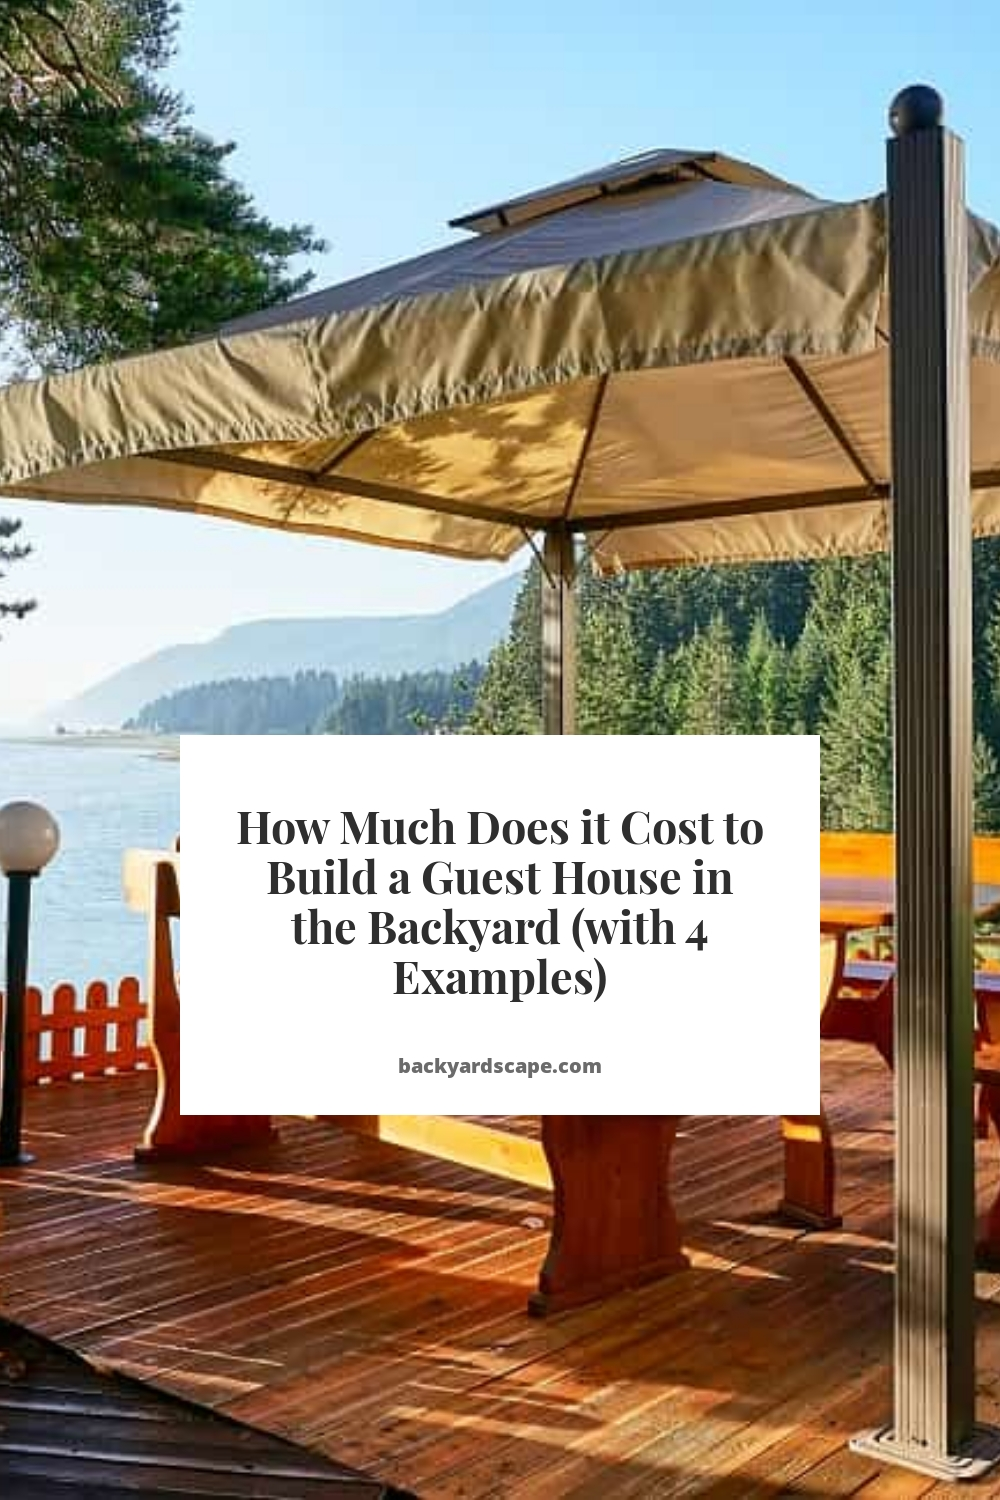 How Much Does it Cost to Build a Guest House in the Backyard (with 4 Examples)